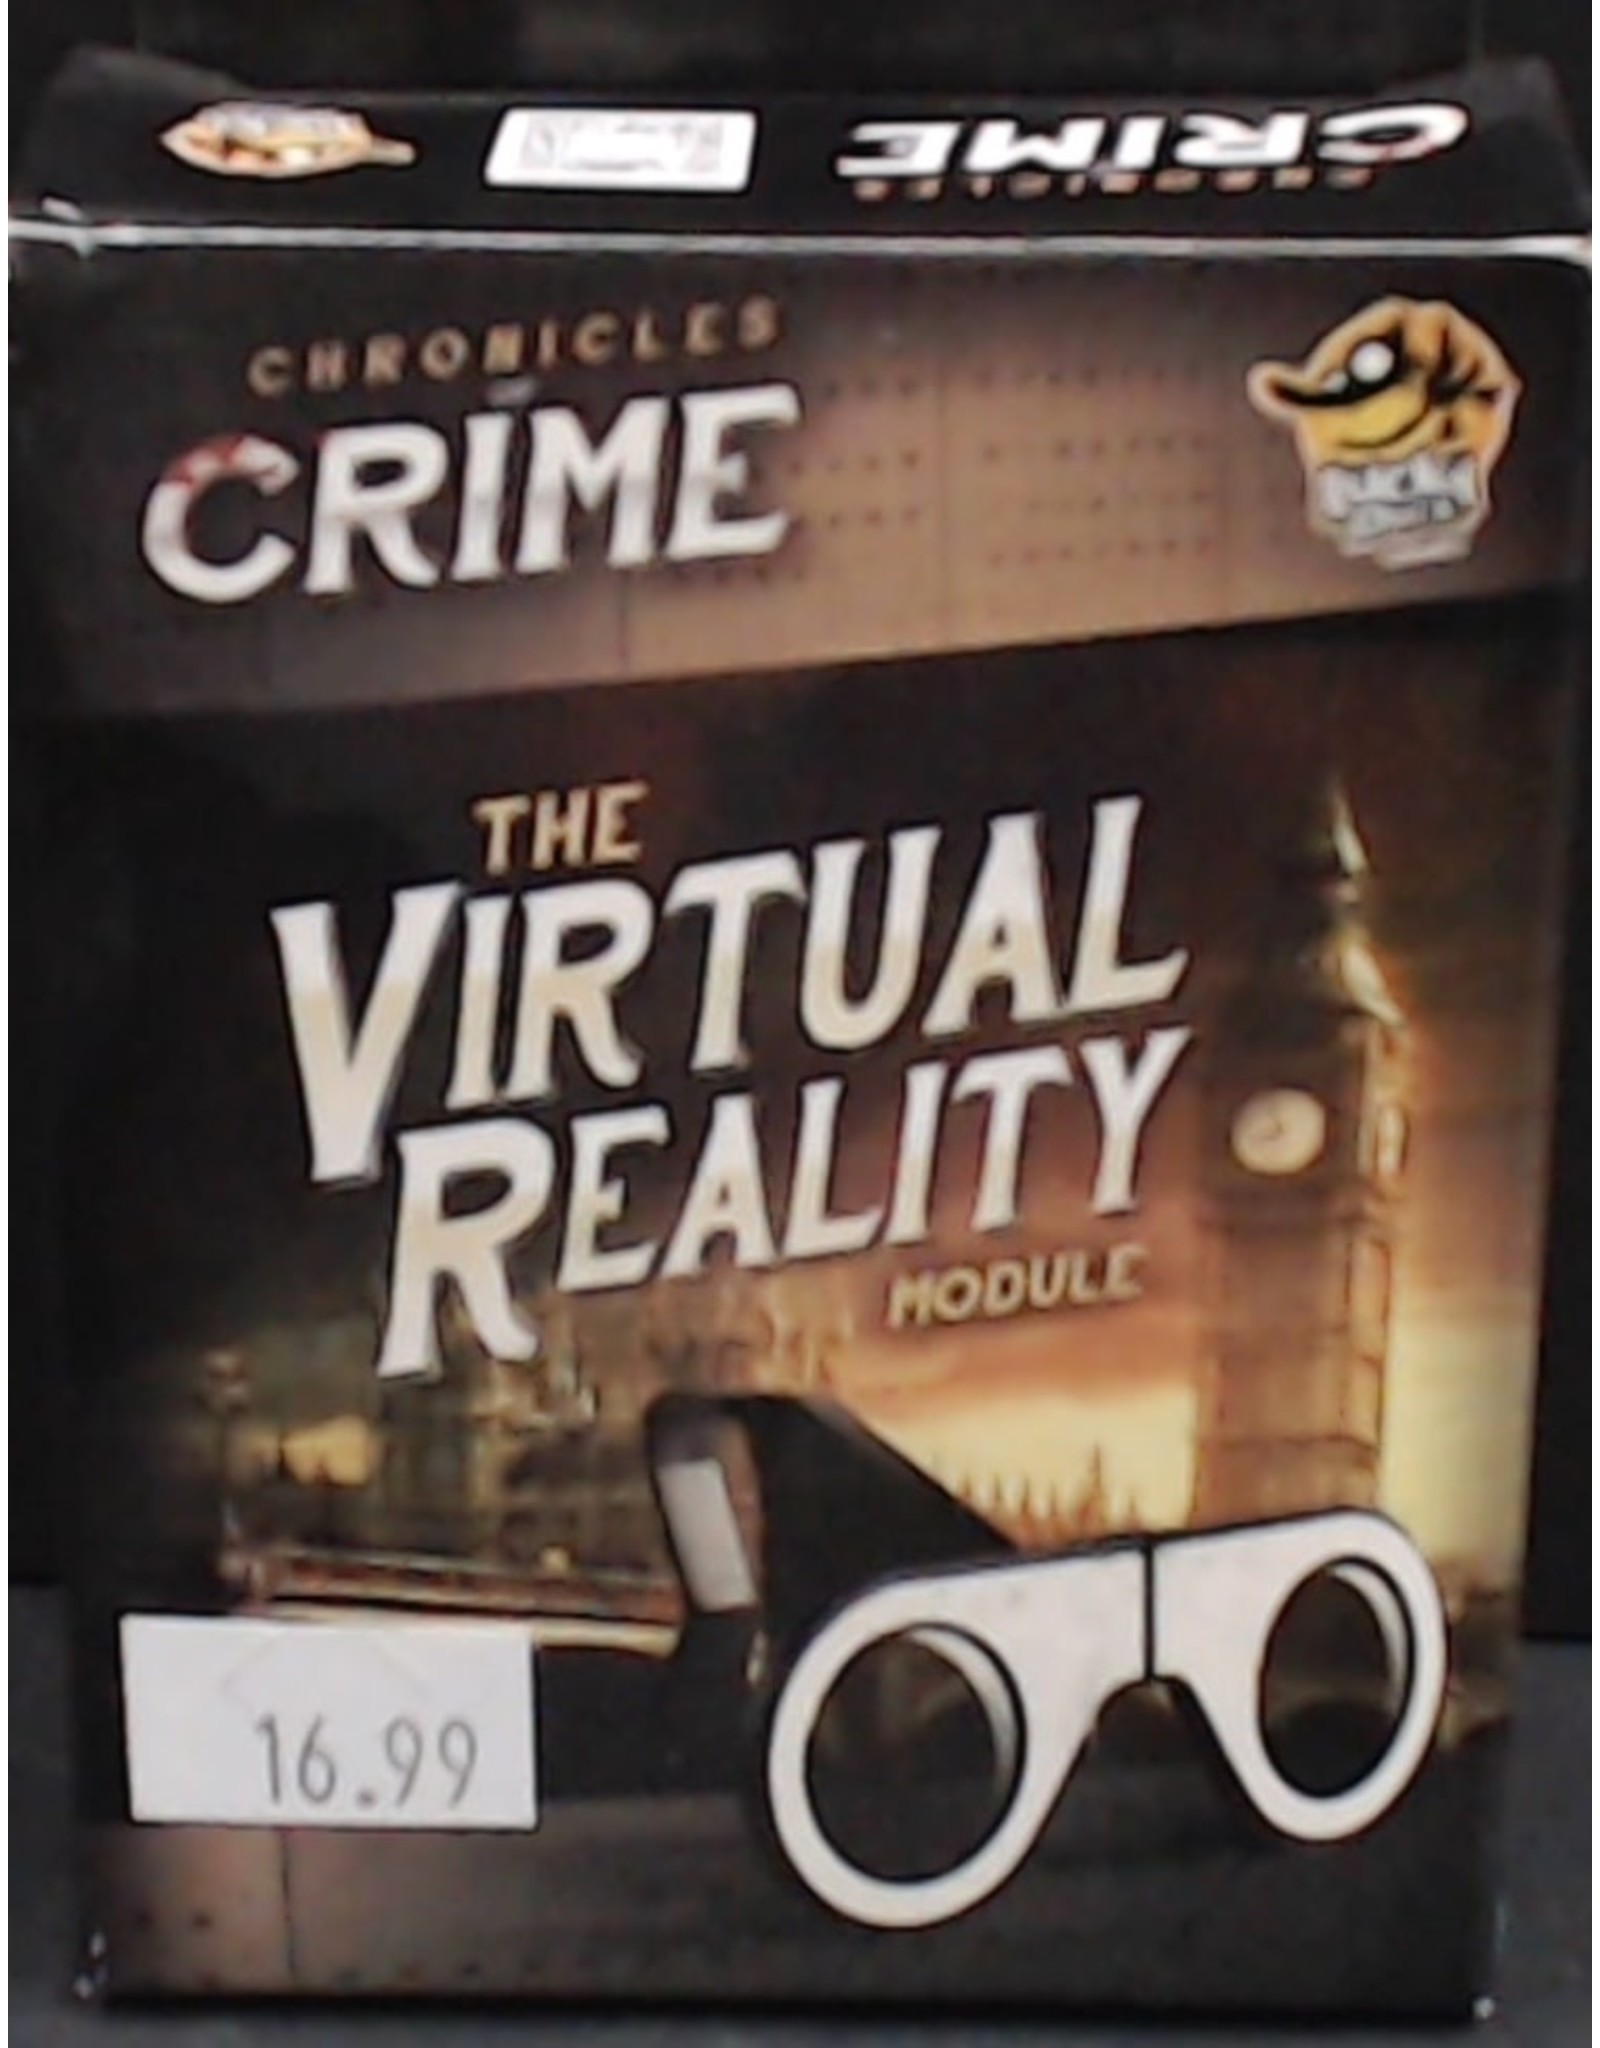 Chronicles of Crime The Virtual Reality Module